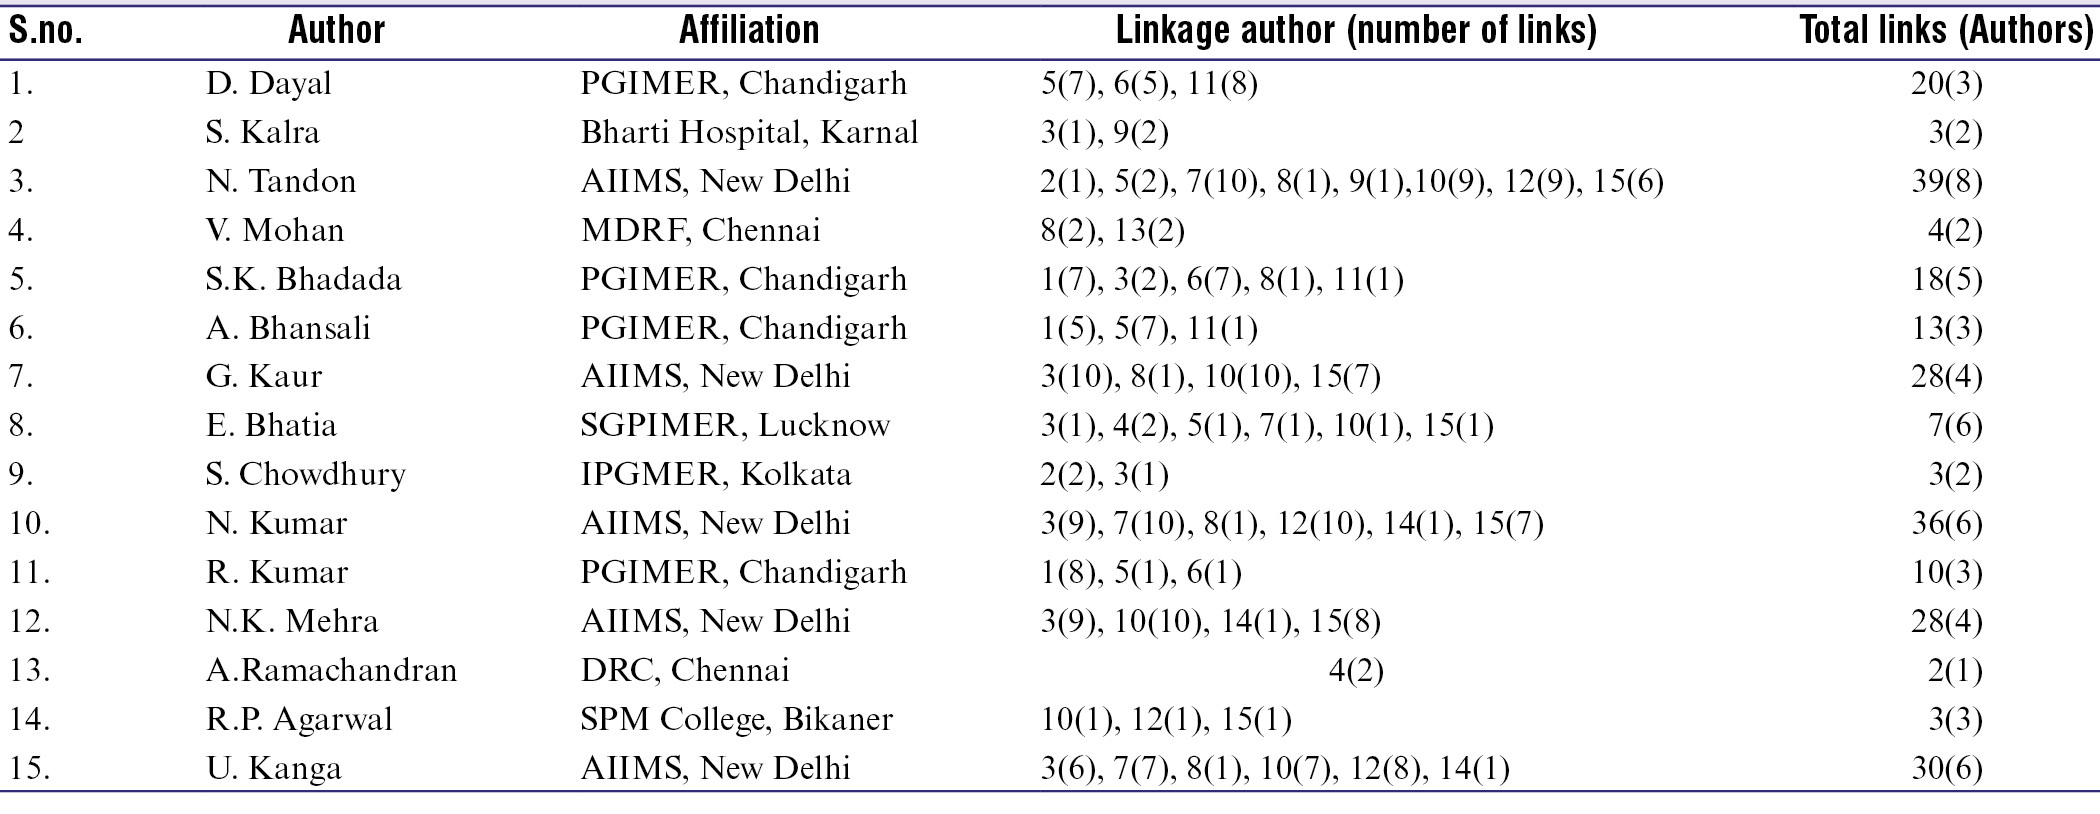 ESM Table 8: Collaborative linkages among top 15 authors during 1996-2019